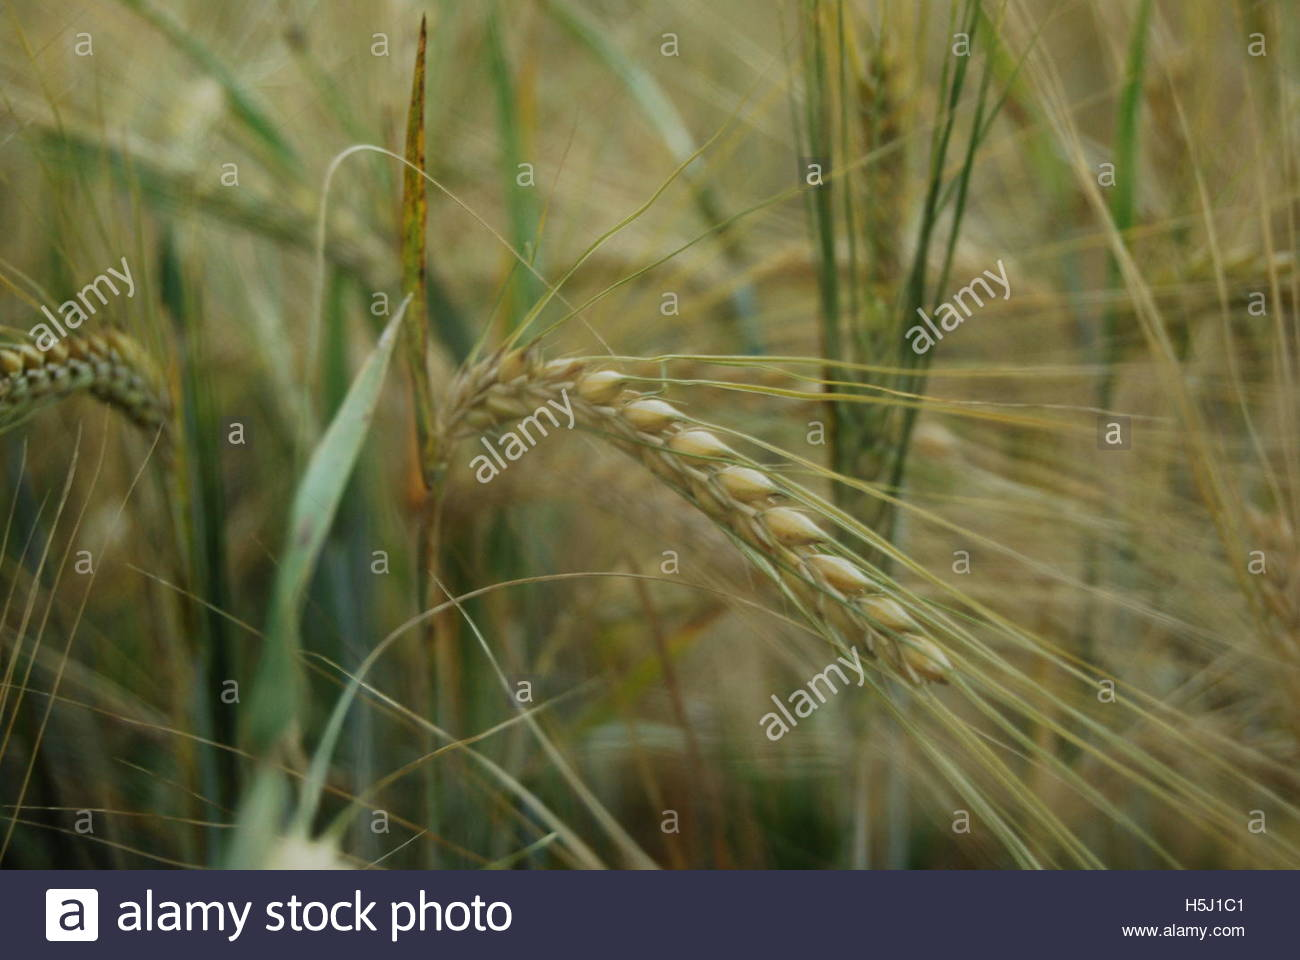 Spigot barley in the field - Stock Image